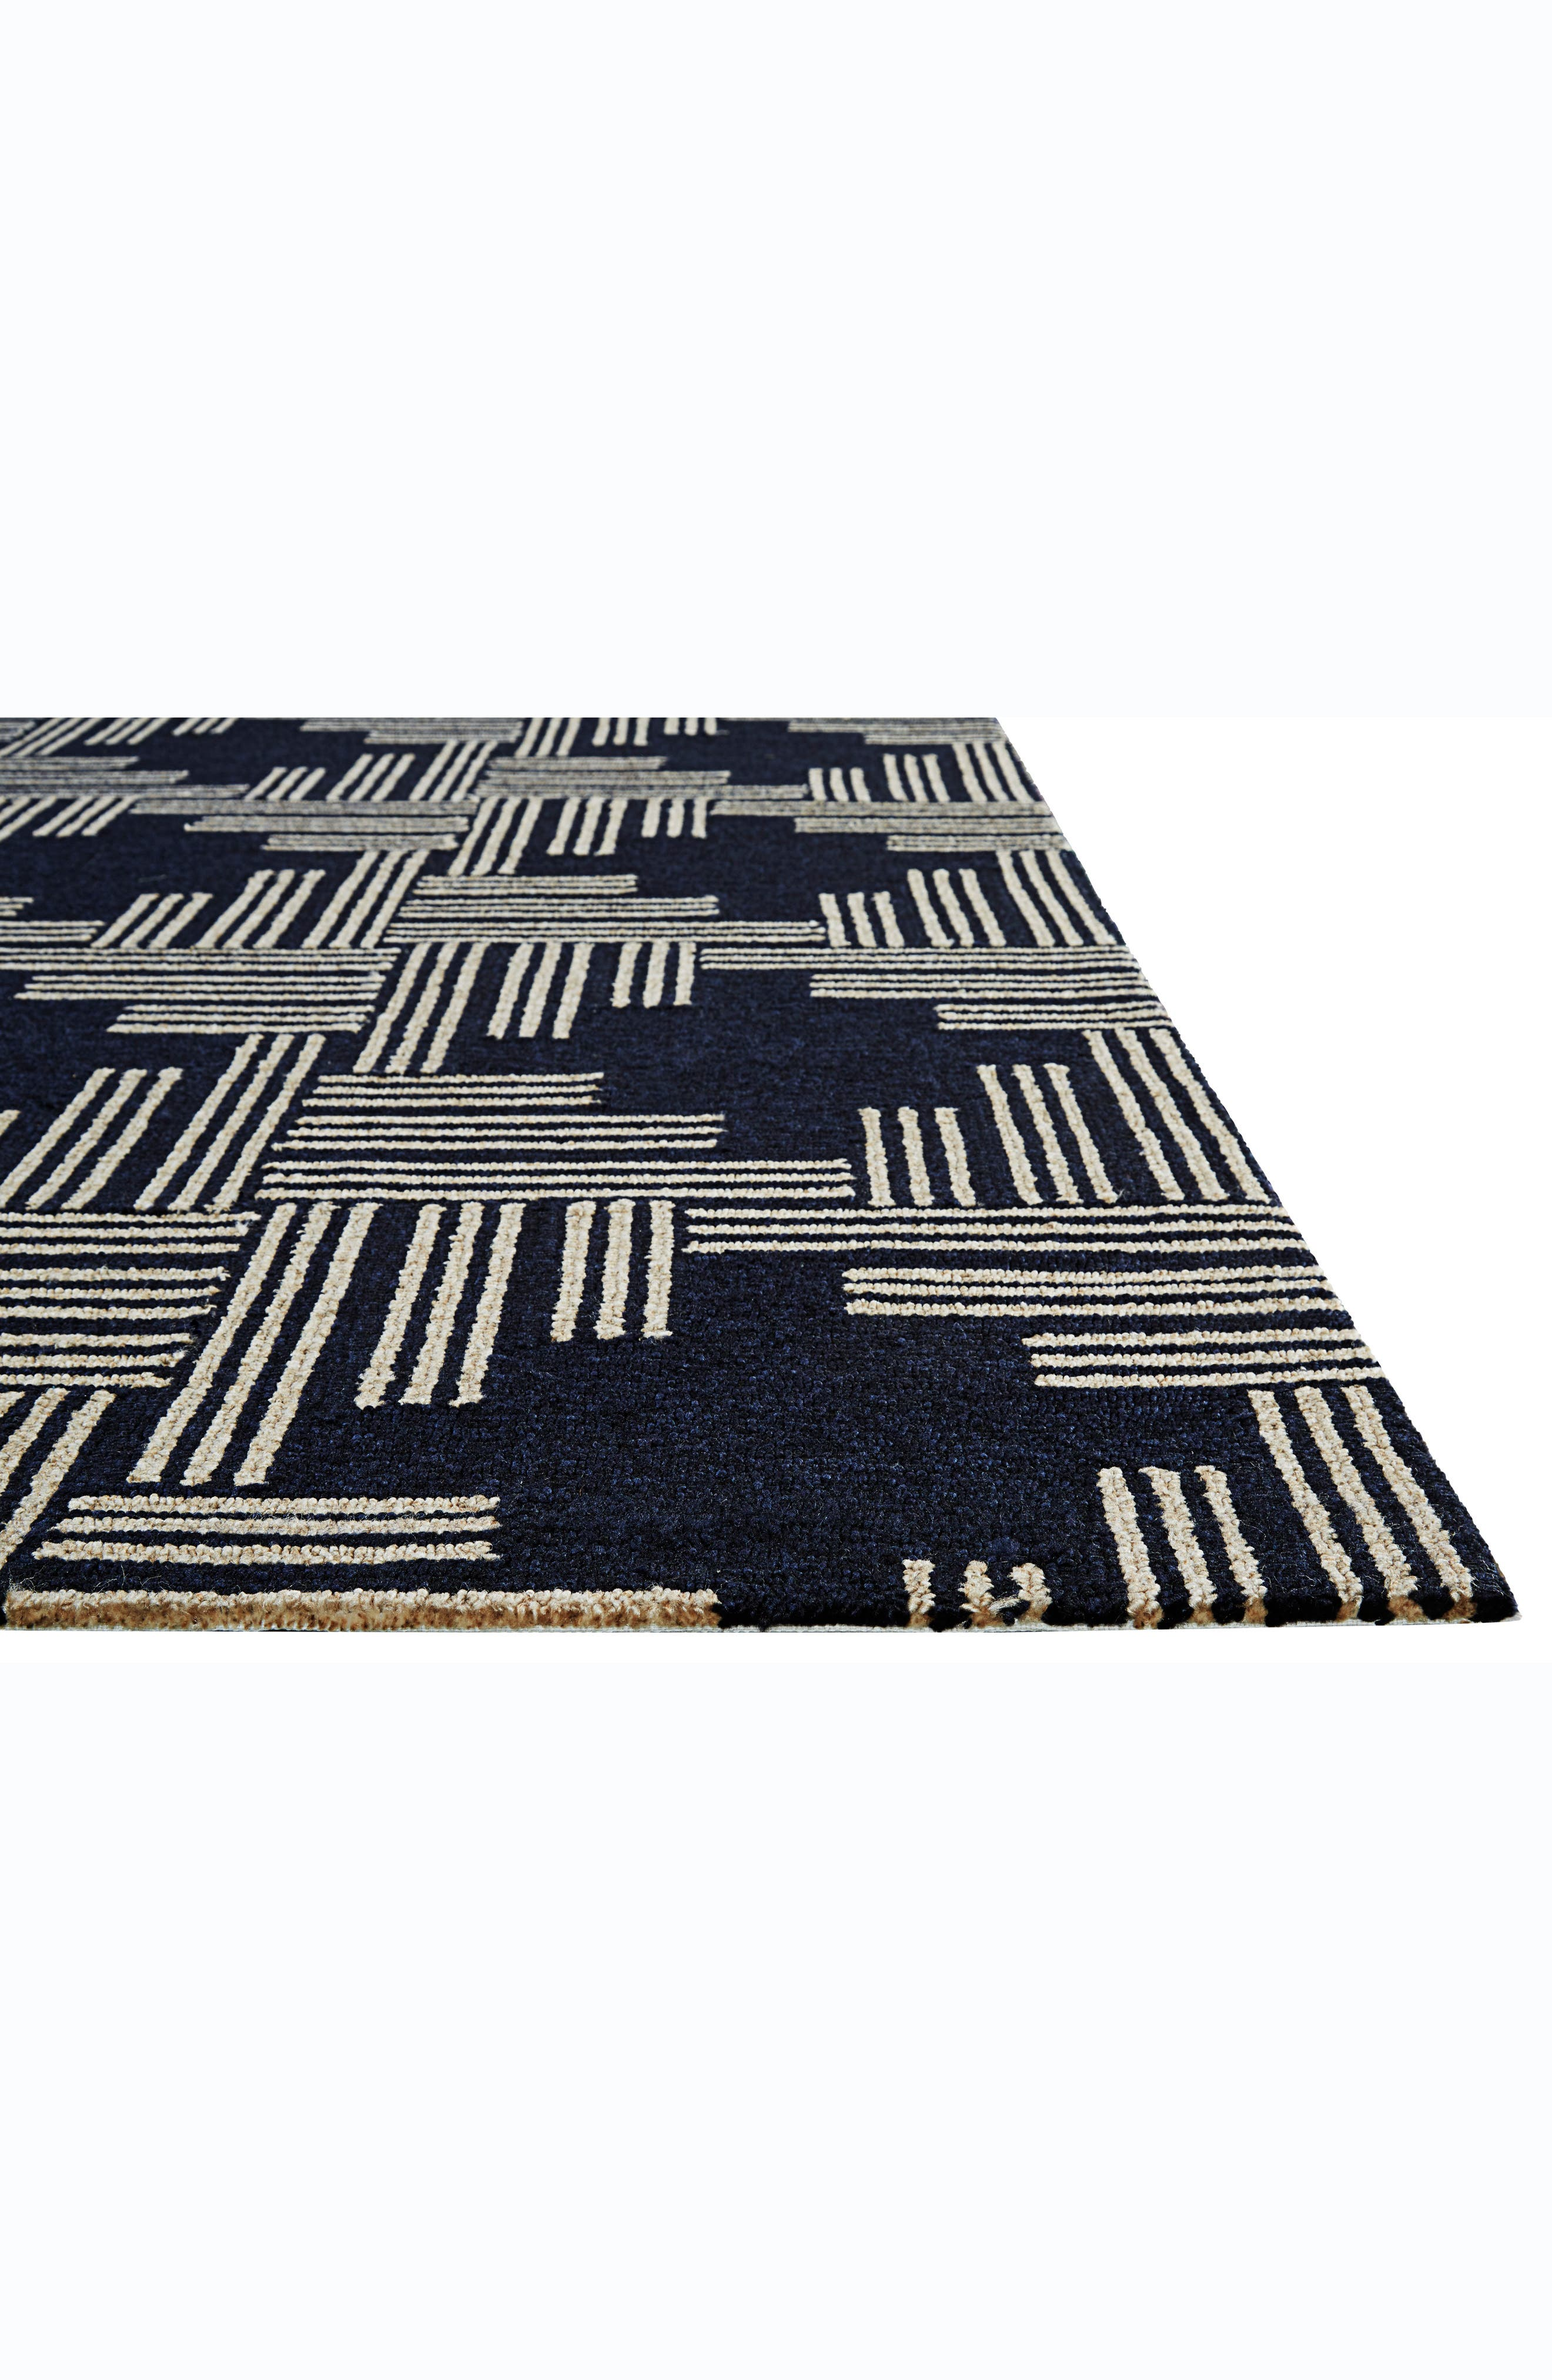 Contemporary Geo Cross Rug,                             Alternate thumbnail 6, color,